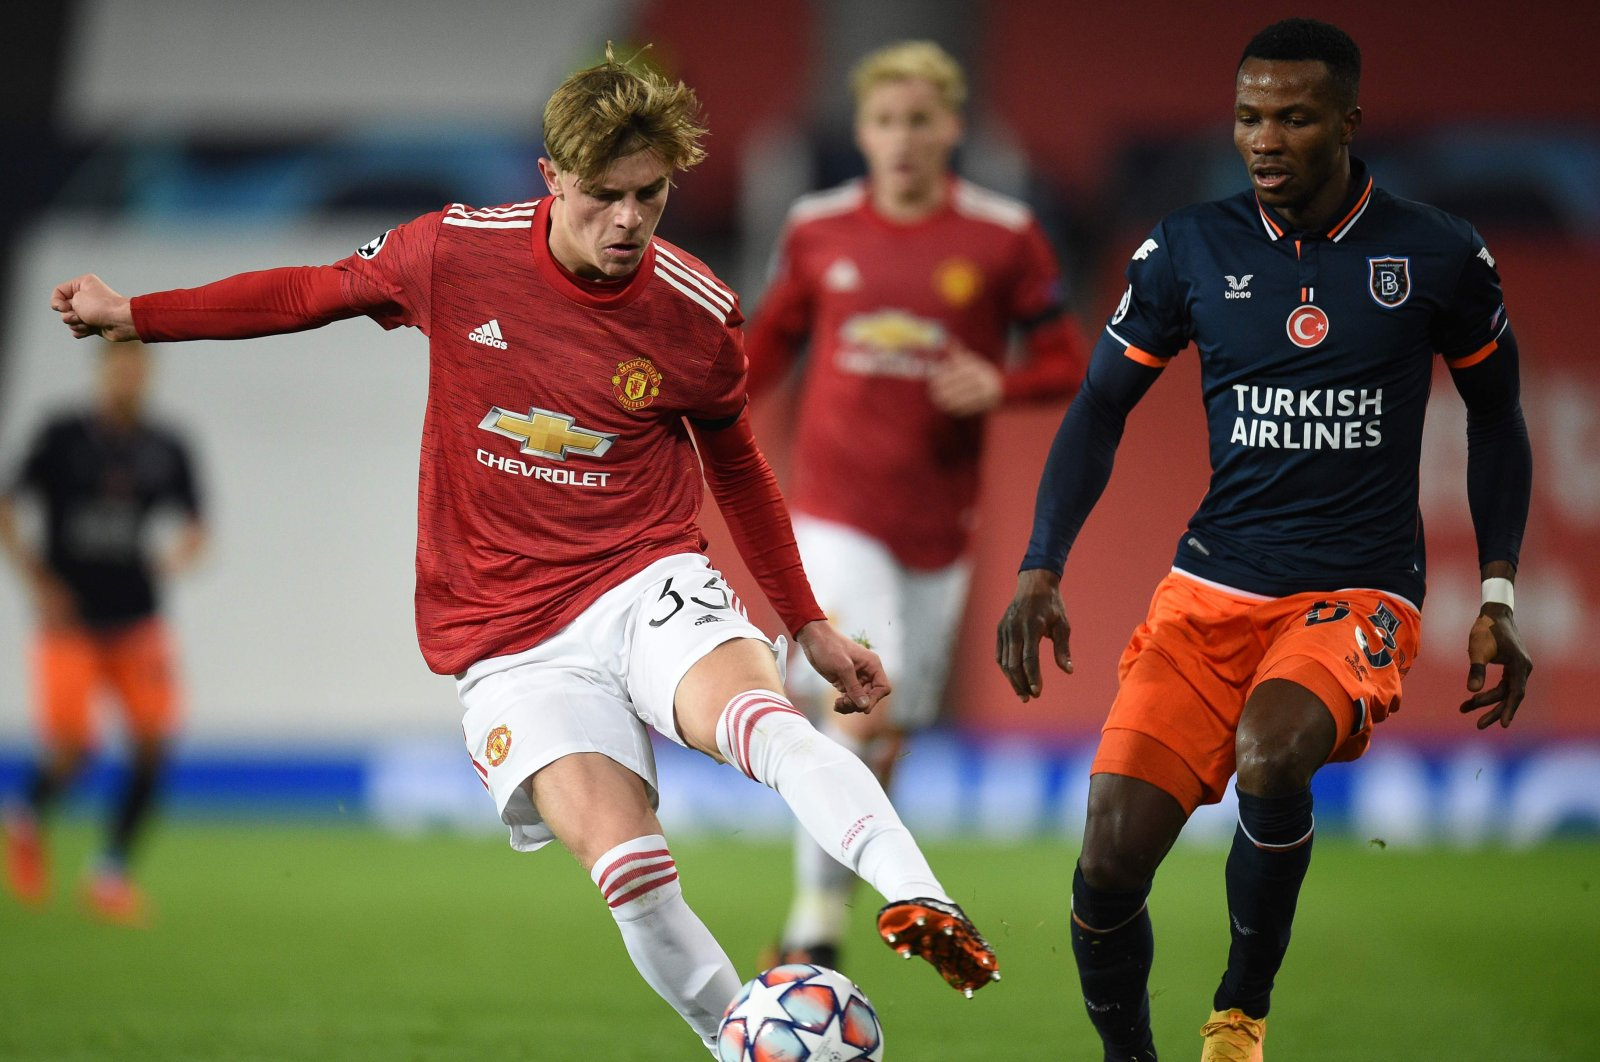 Başakşehir's Boli Bolingoli (R) challenges Manchester United's Brandon Williams during a Champions League match, in Manchester, England, Nov. 24, 2020. (AFP Photo)